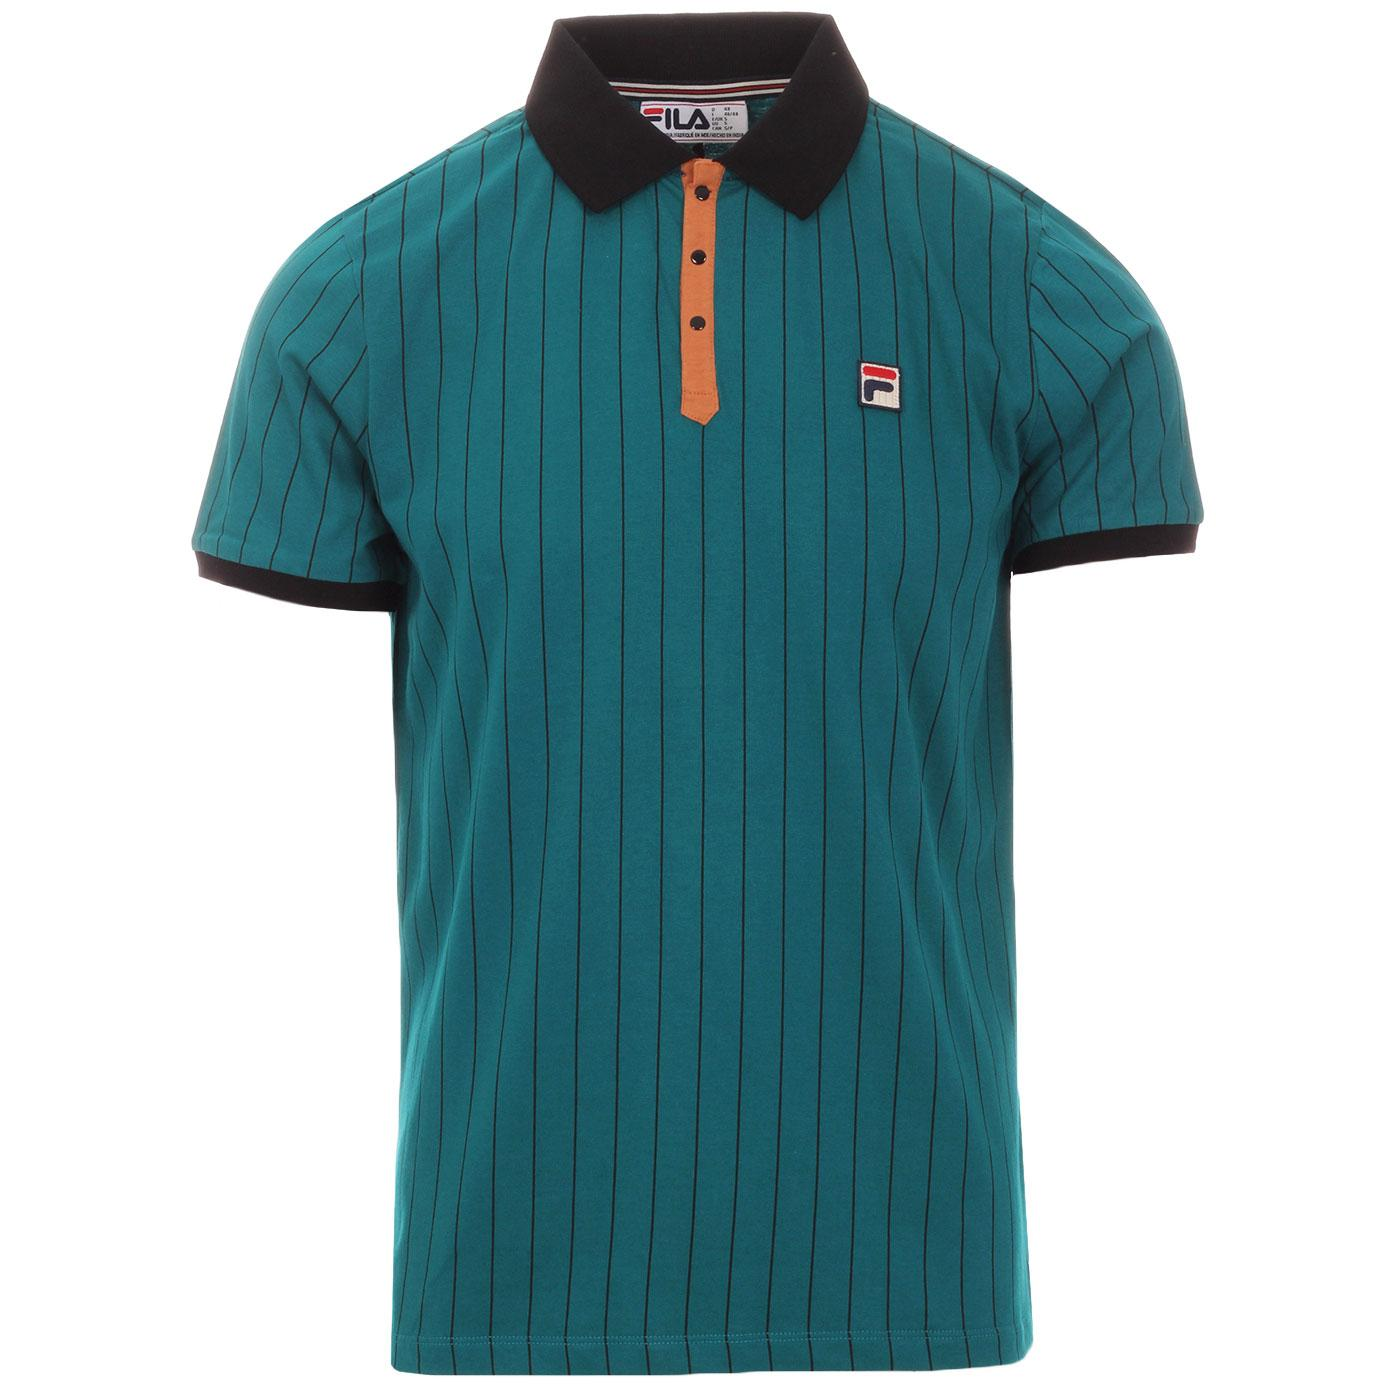 BB1 FILA VINTAGE Retro Borg Tennis Polo Top (HB)